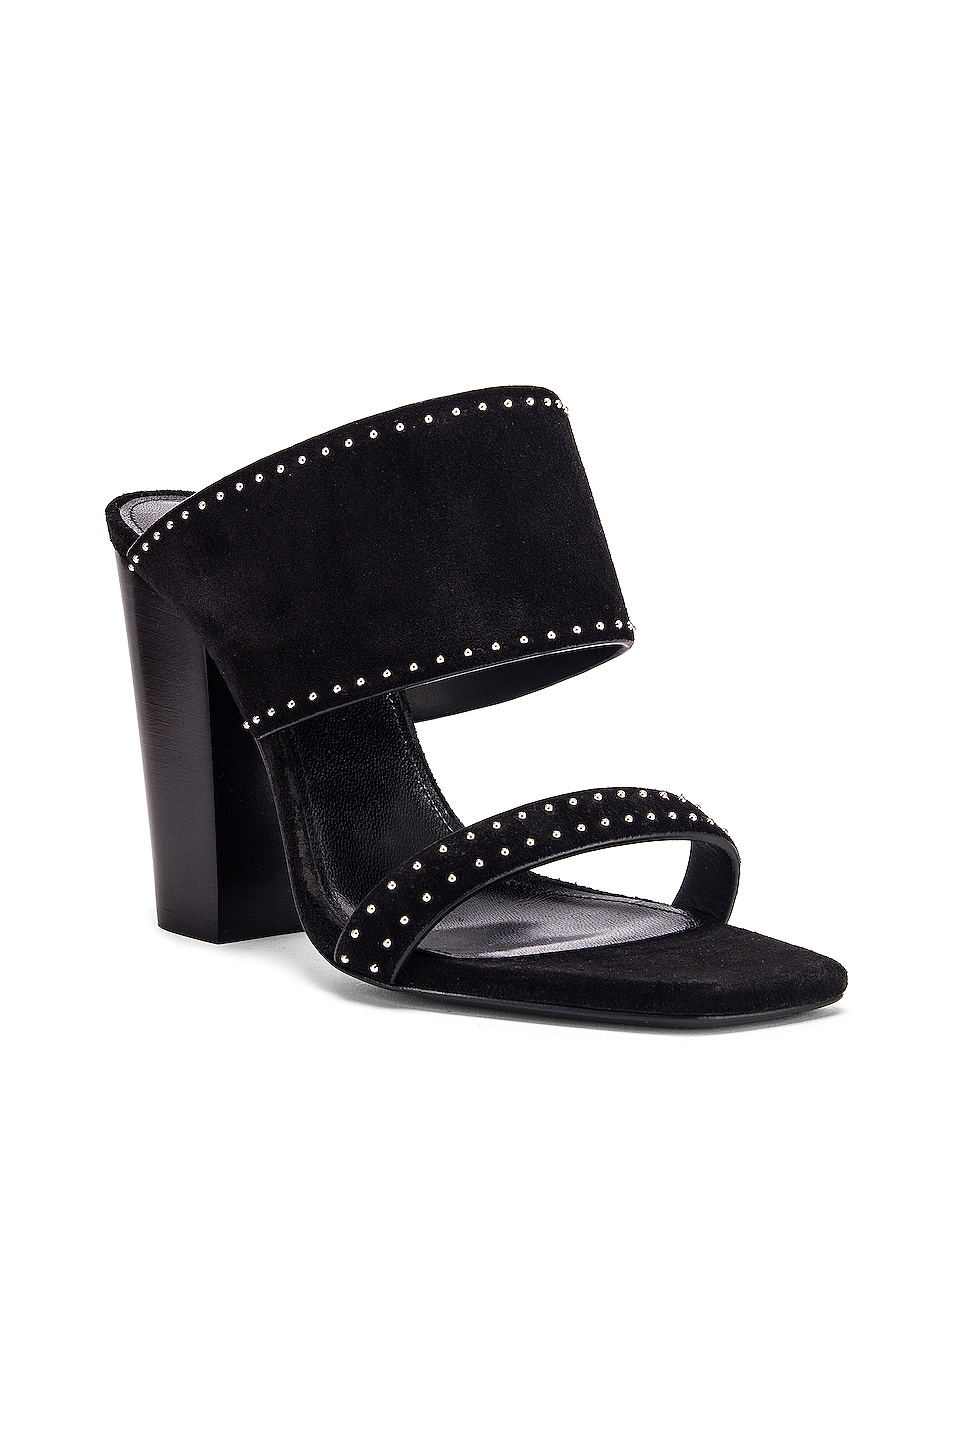 Image 2 of Saint Laurent Oak Stud Sandals in Black